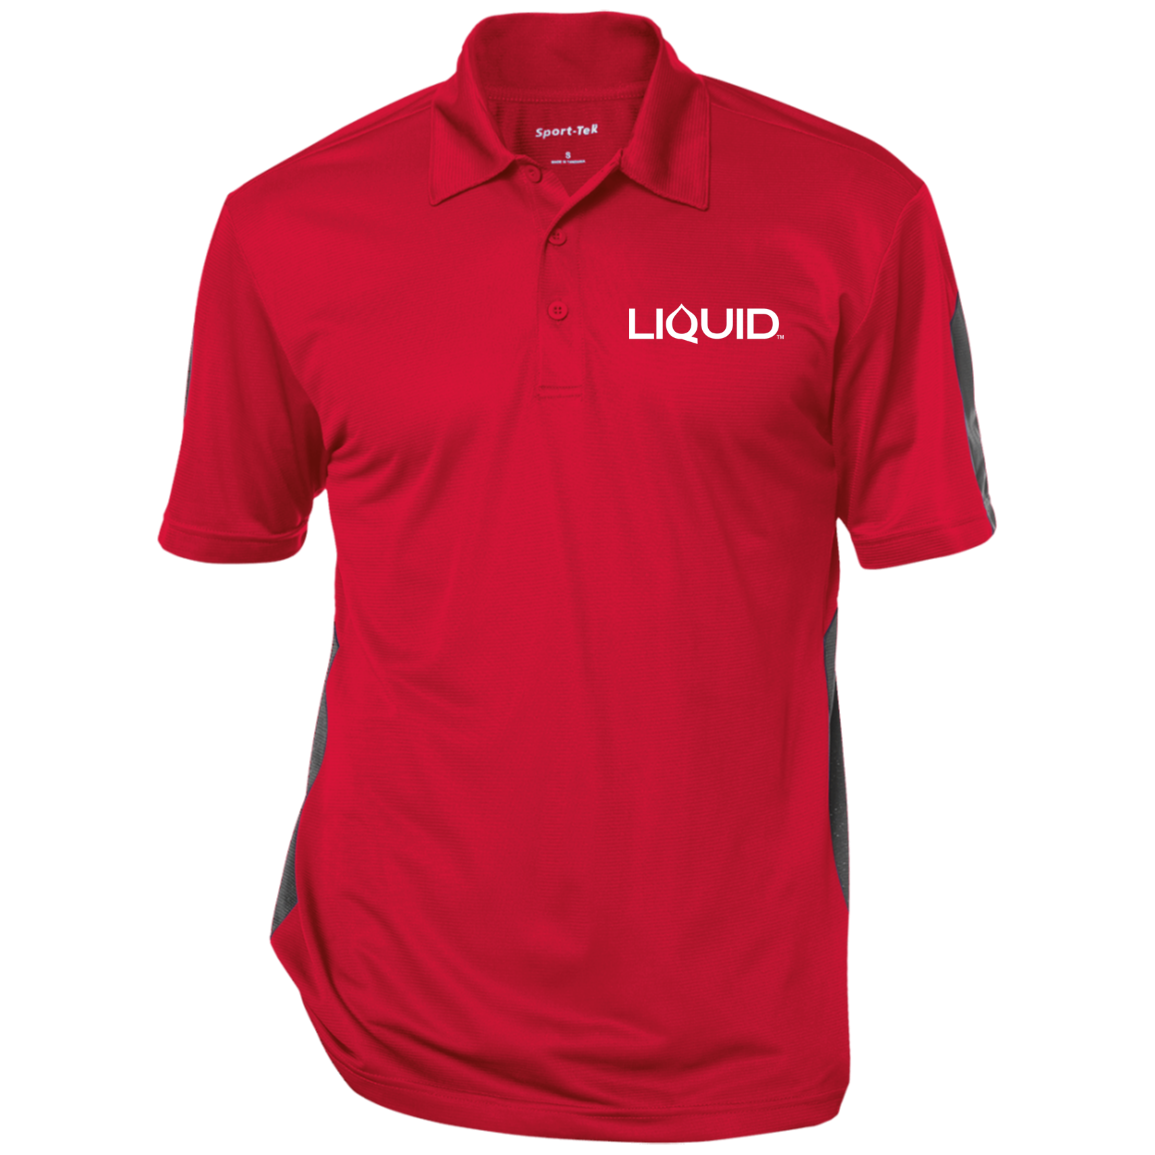 ST695 Performance Textured Three-Button Polo - Liquid Hydration Gear